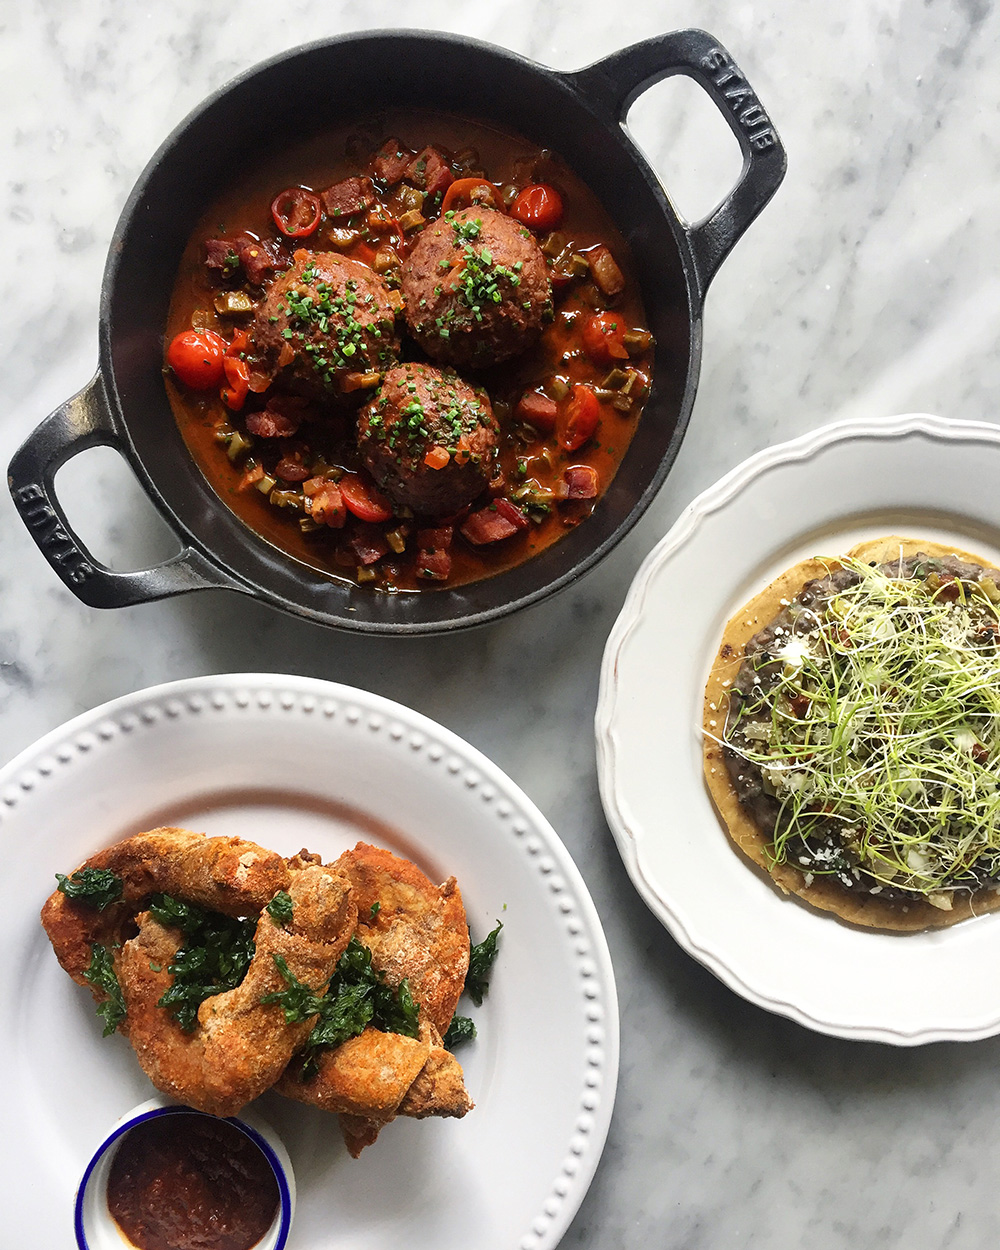 Bird's-eye view of three Latin American dishes, including meatballs in red sauce